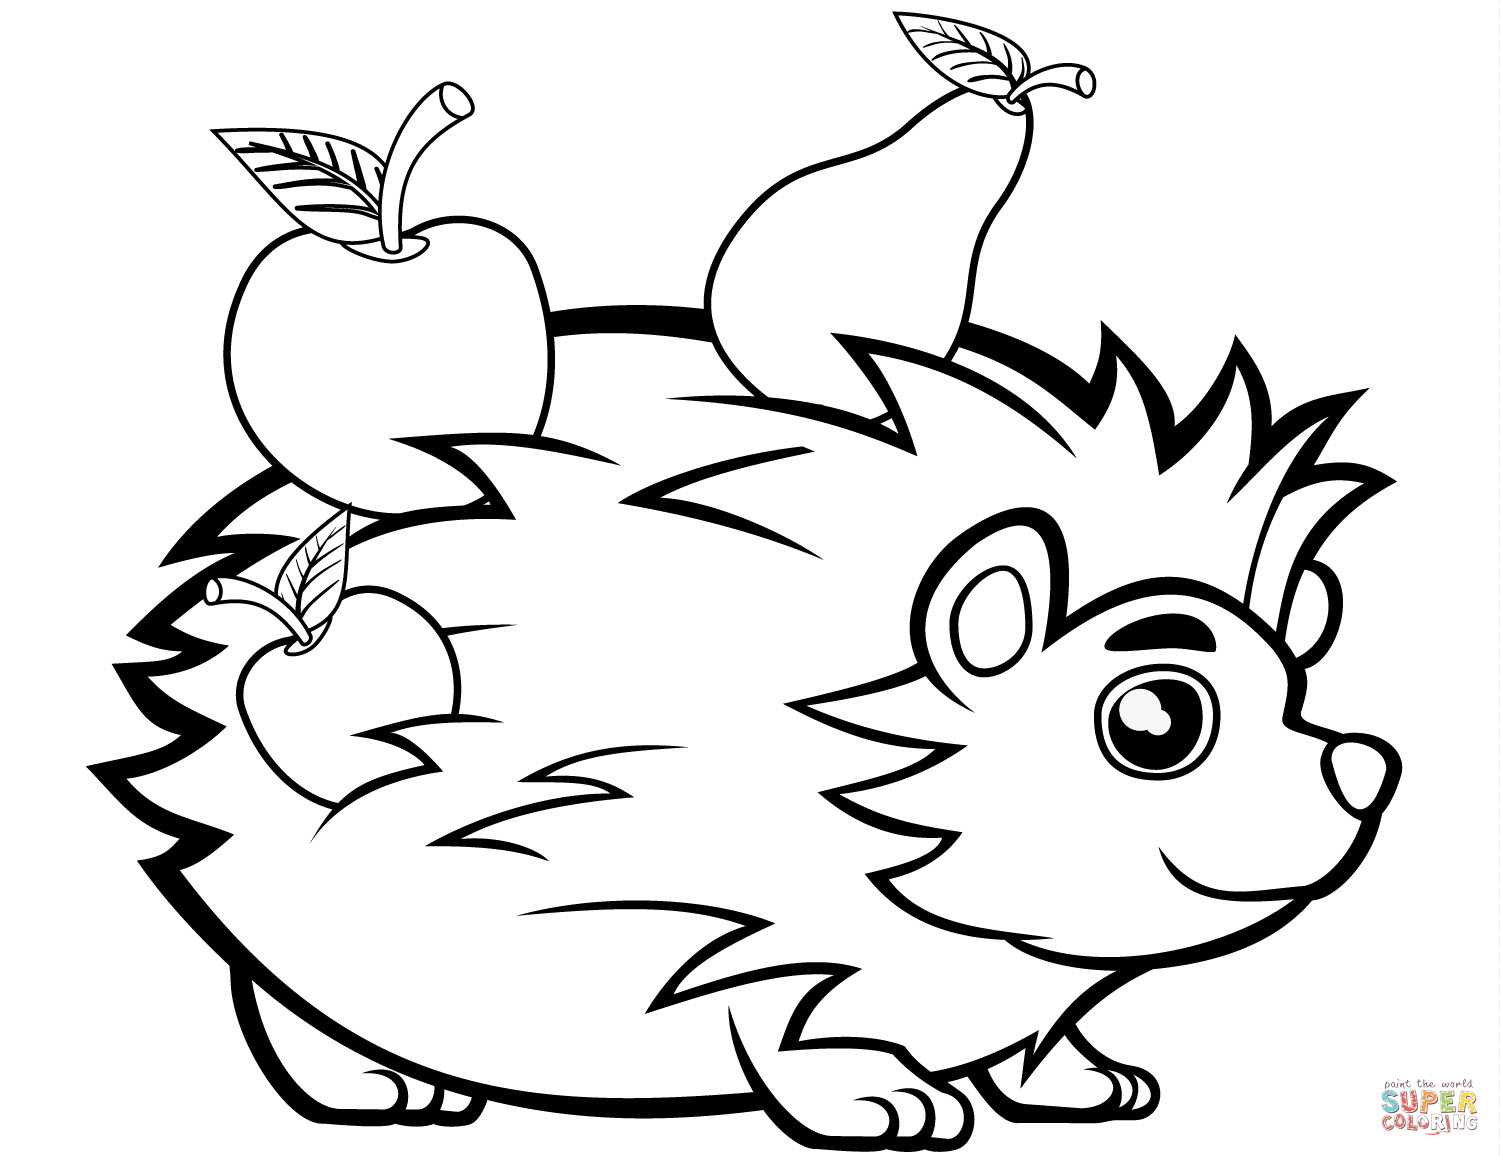 hedgehog colouring sheet drawing tutorials tags sonic characters coloring pages hedgehog colouring sheet